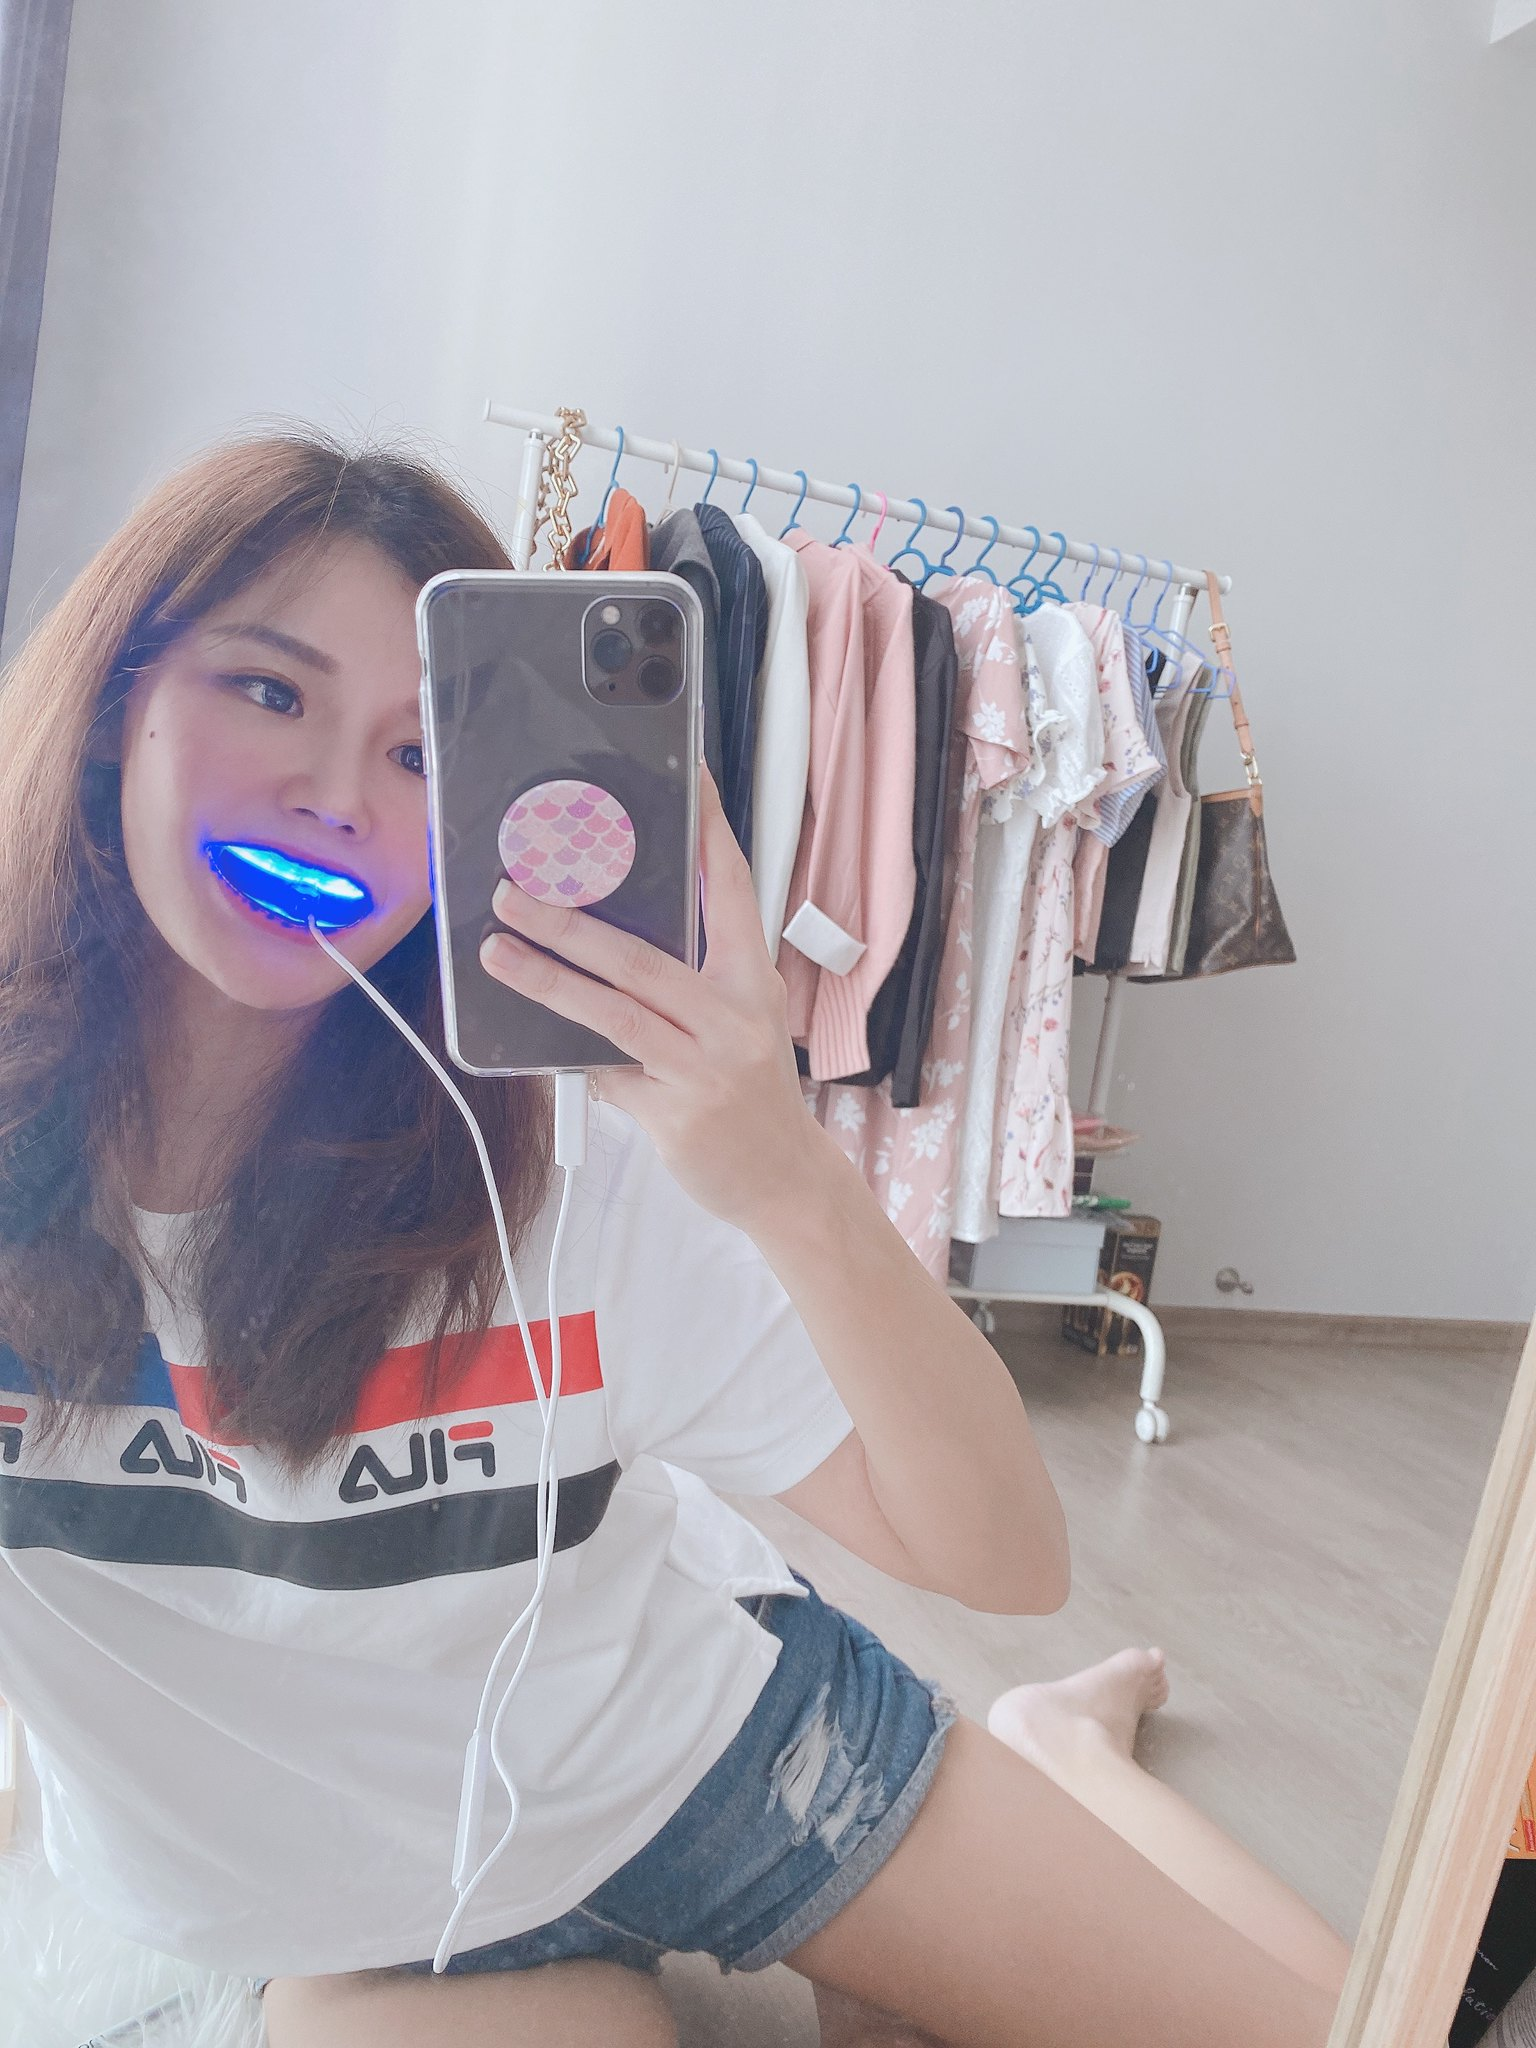 teeth whitening kit